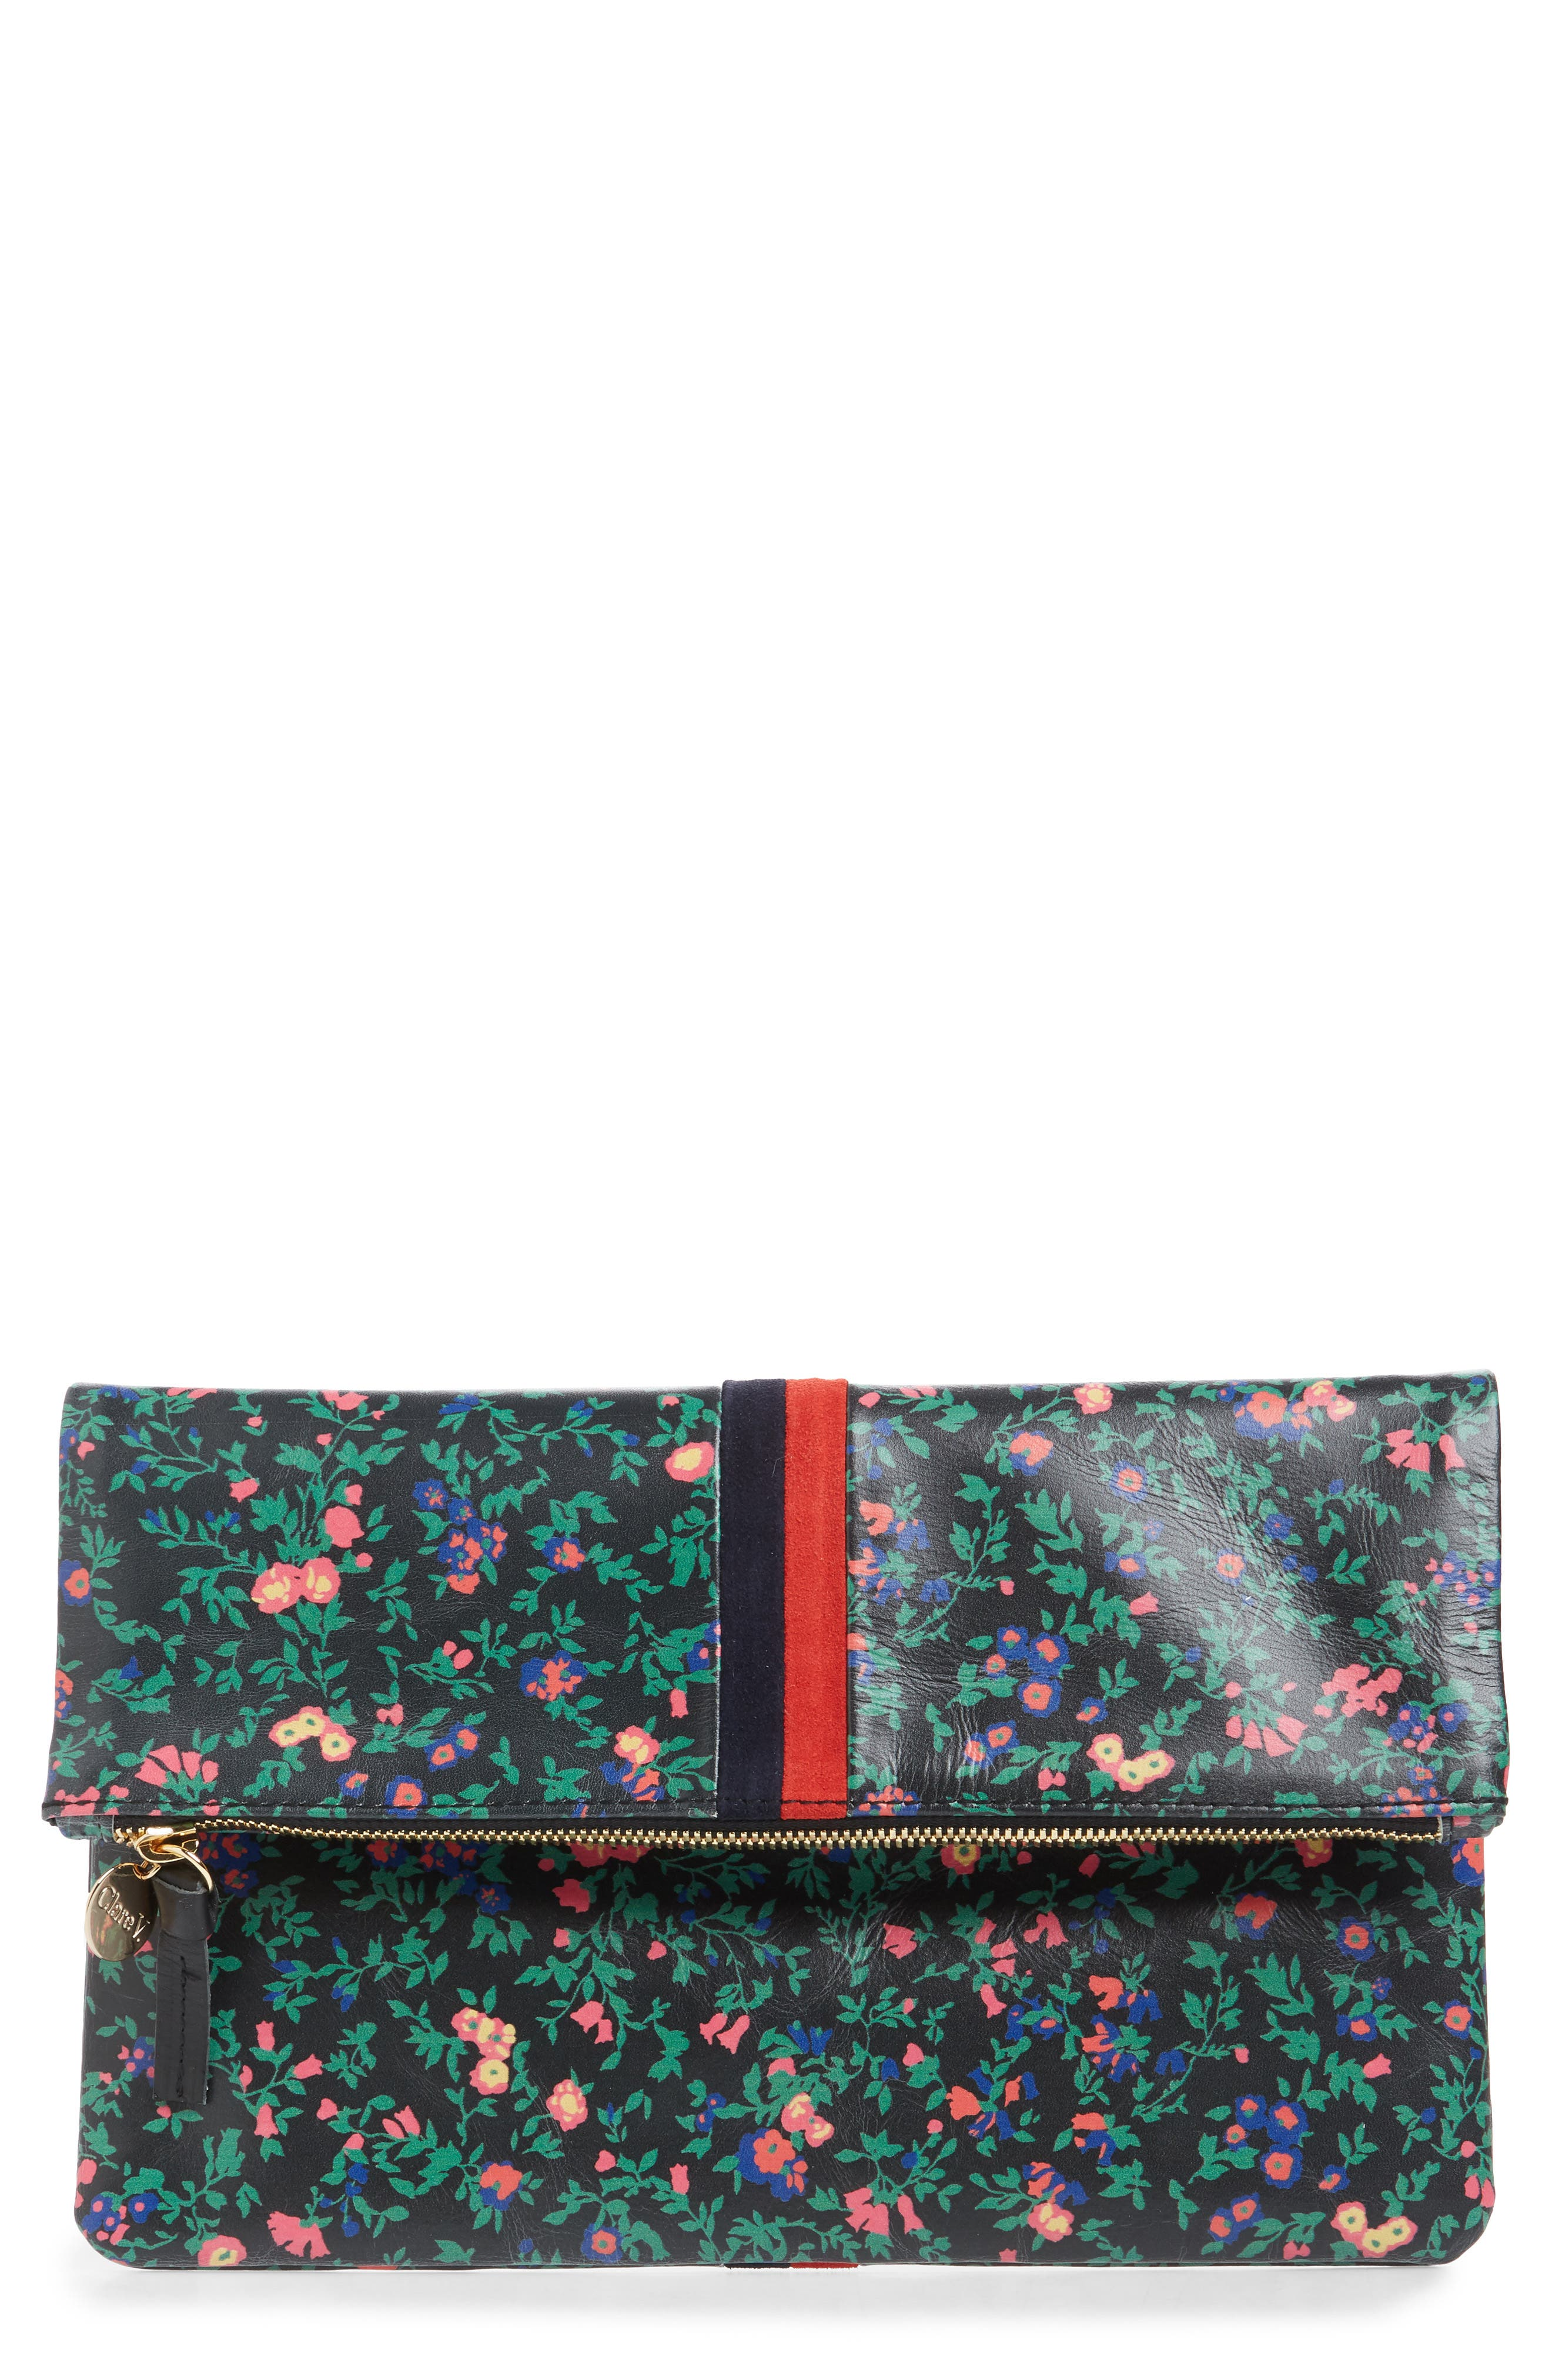 Foldover Ditzy Floral Leather Clutch,                         Main,                         color, BLACK